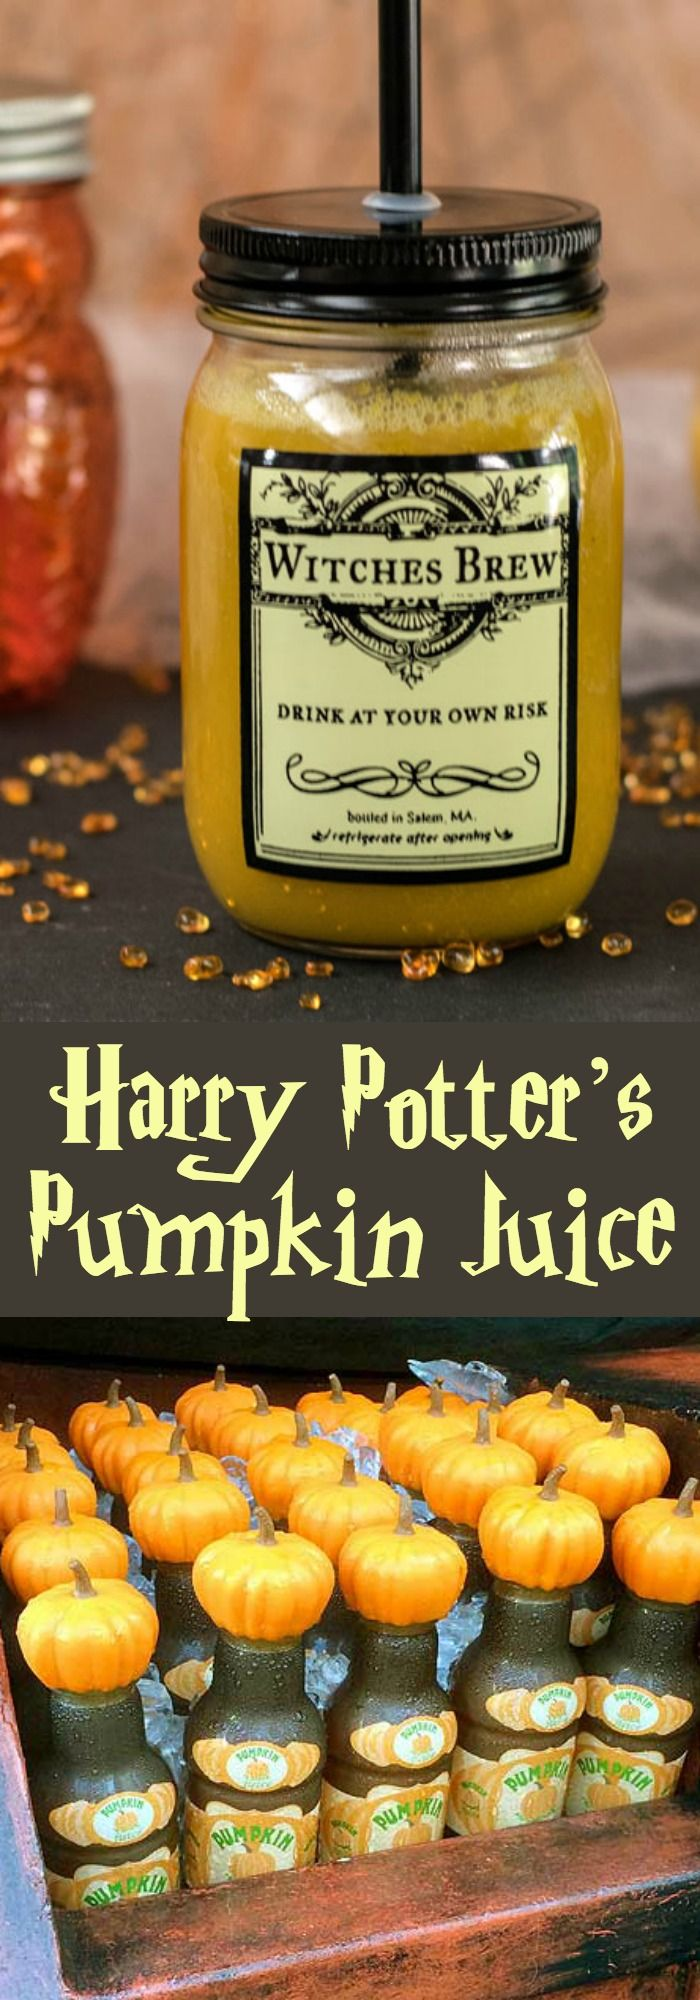 healthy halloween sweet pumpkin juice - Gourmet Halloween Recipes